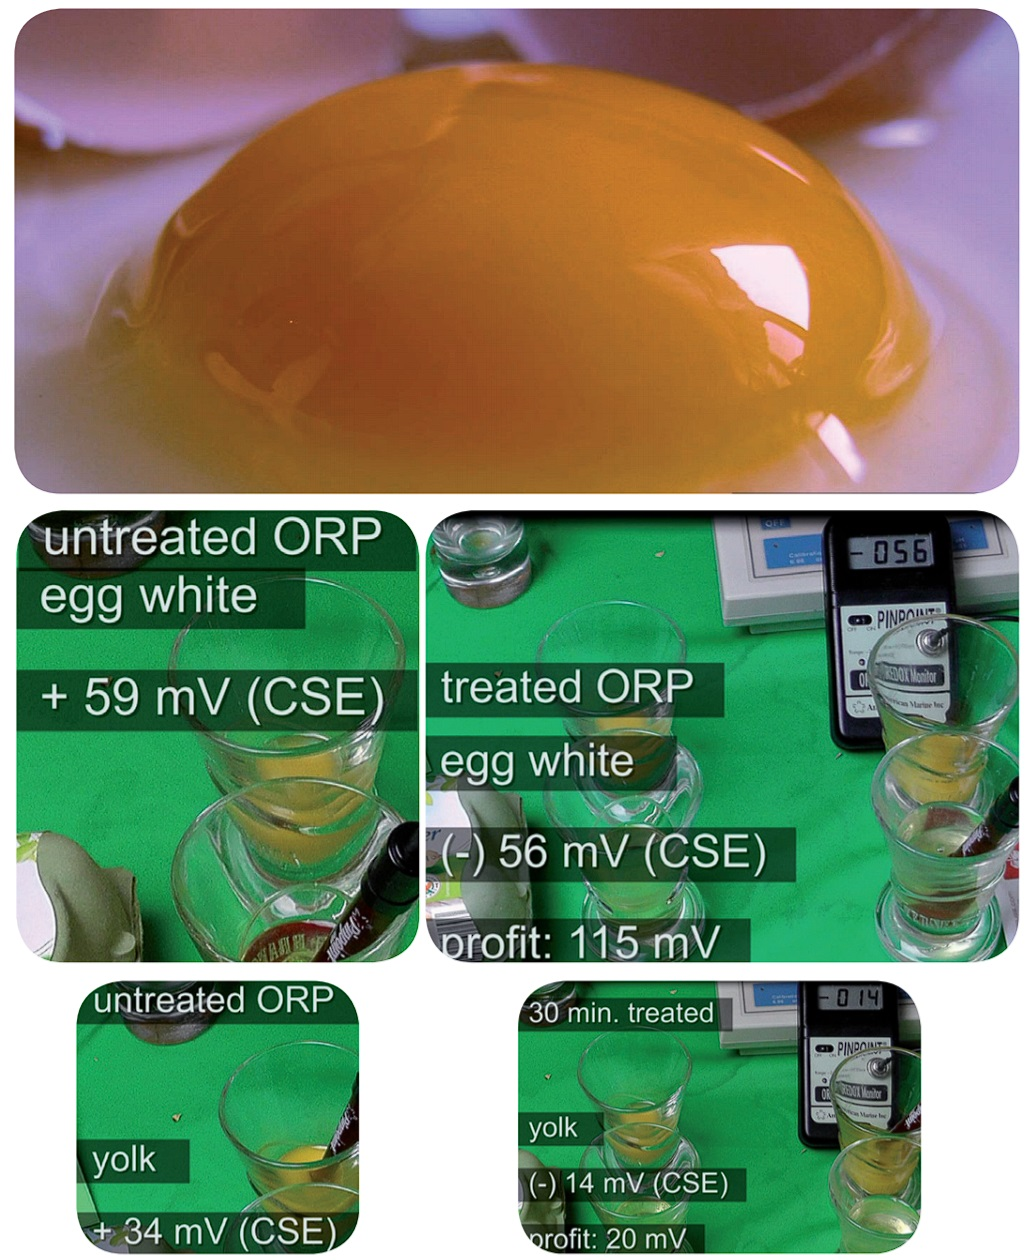 EAW-Eggs-in-alkaline-water